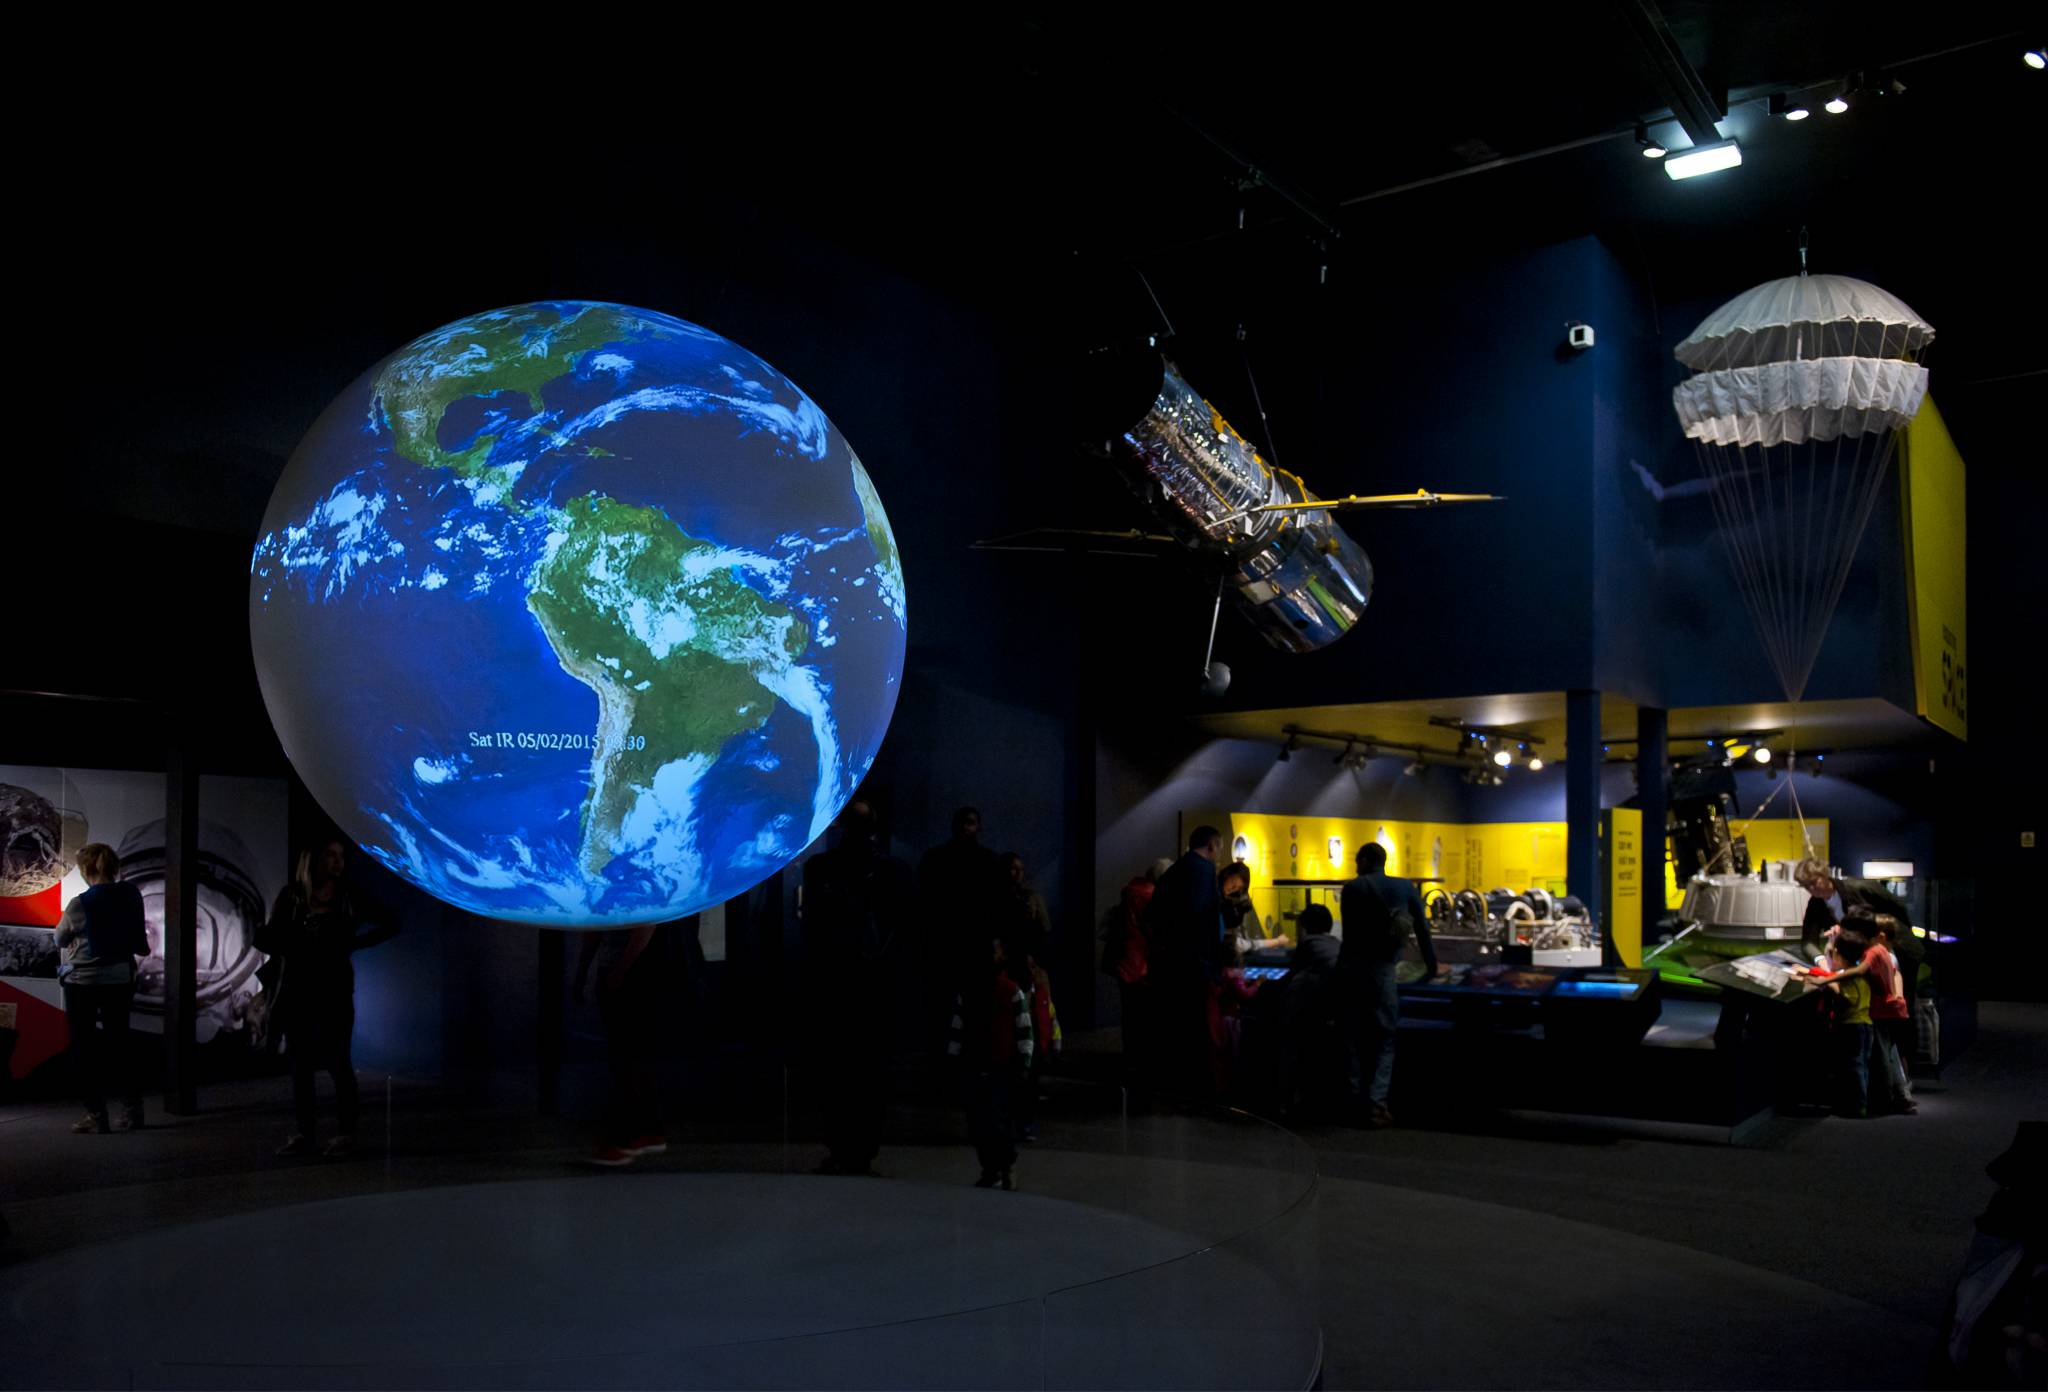 Travel with Tours & Travel to the Natural History Museum of London